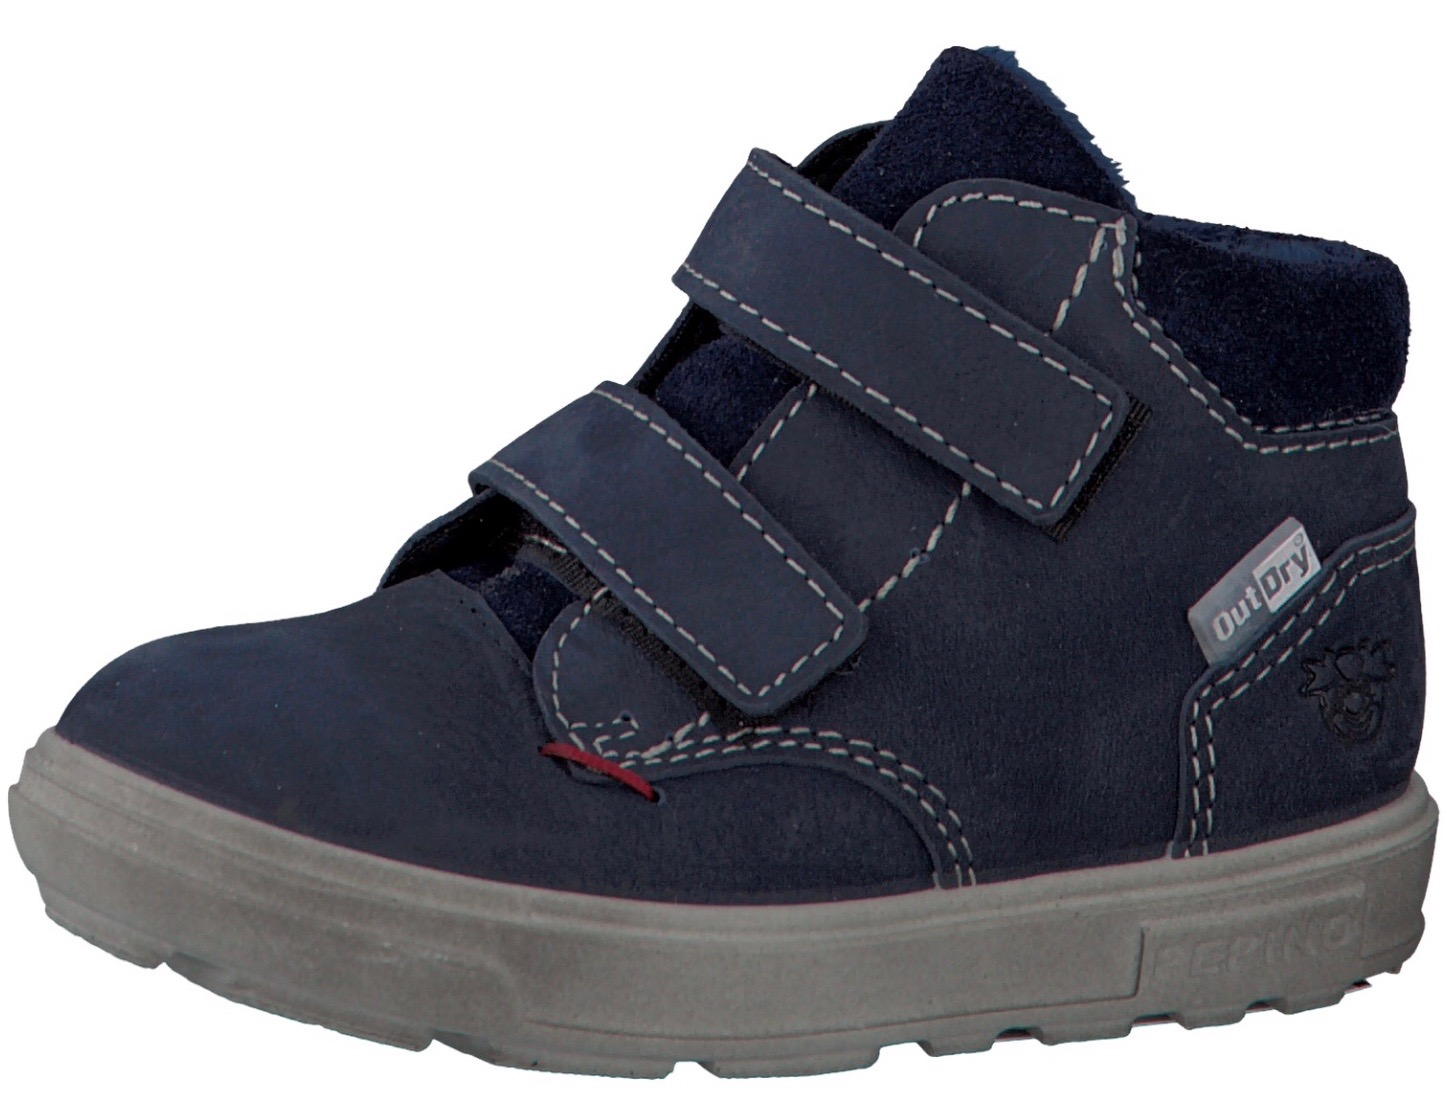 Blue suede high back trainers for toddler boys